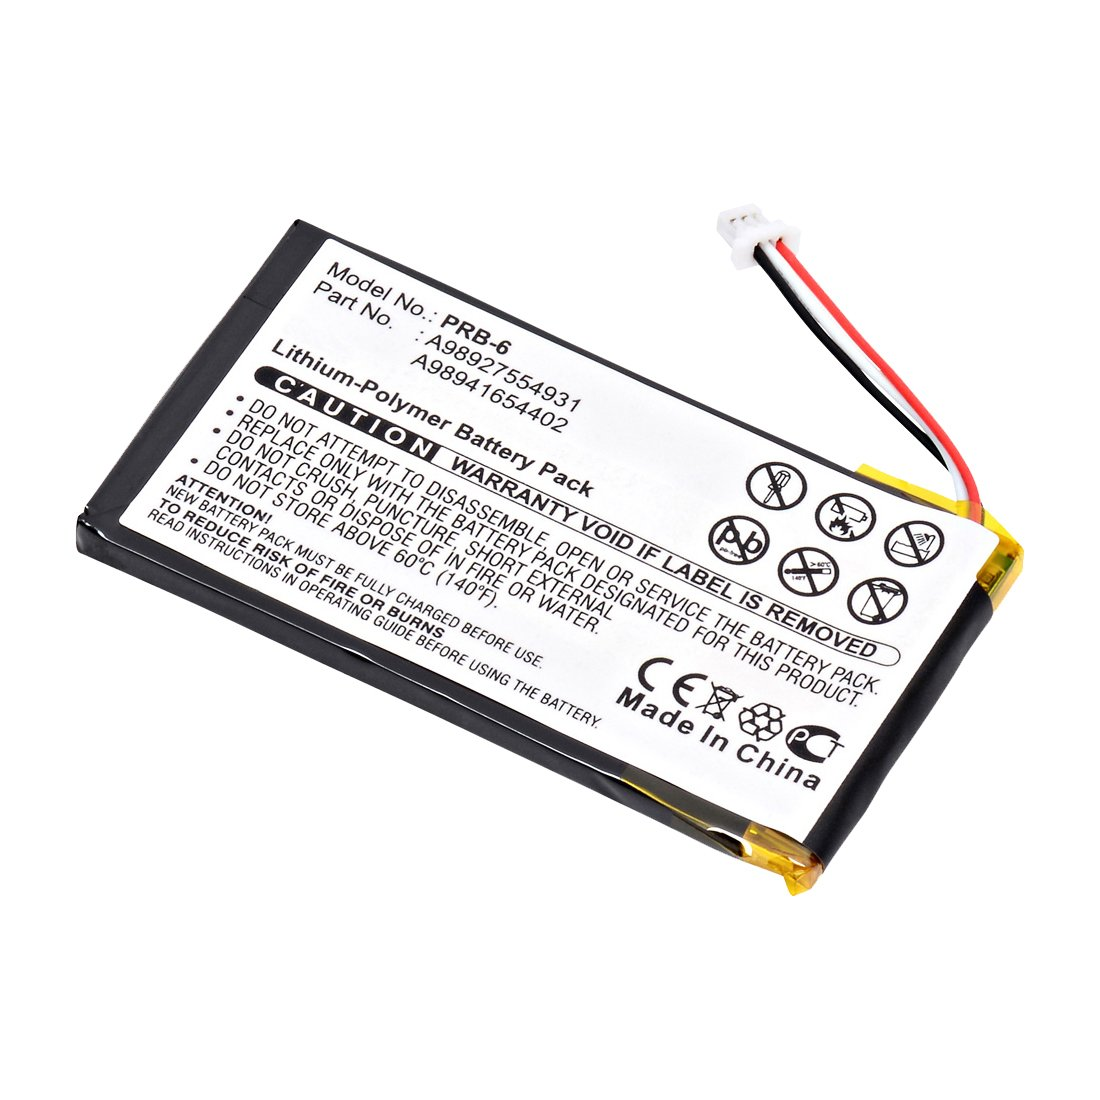 Replacement Sony Prs 600 Battery